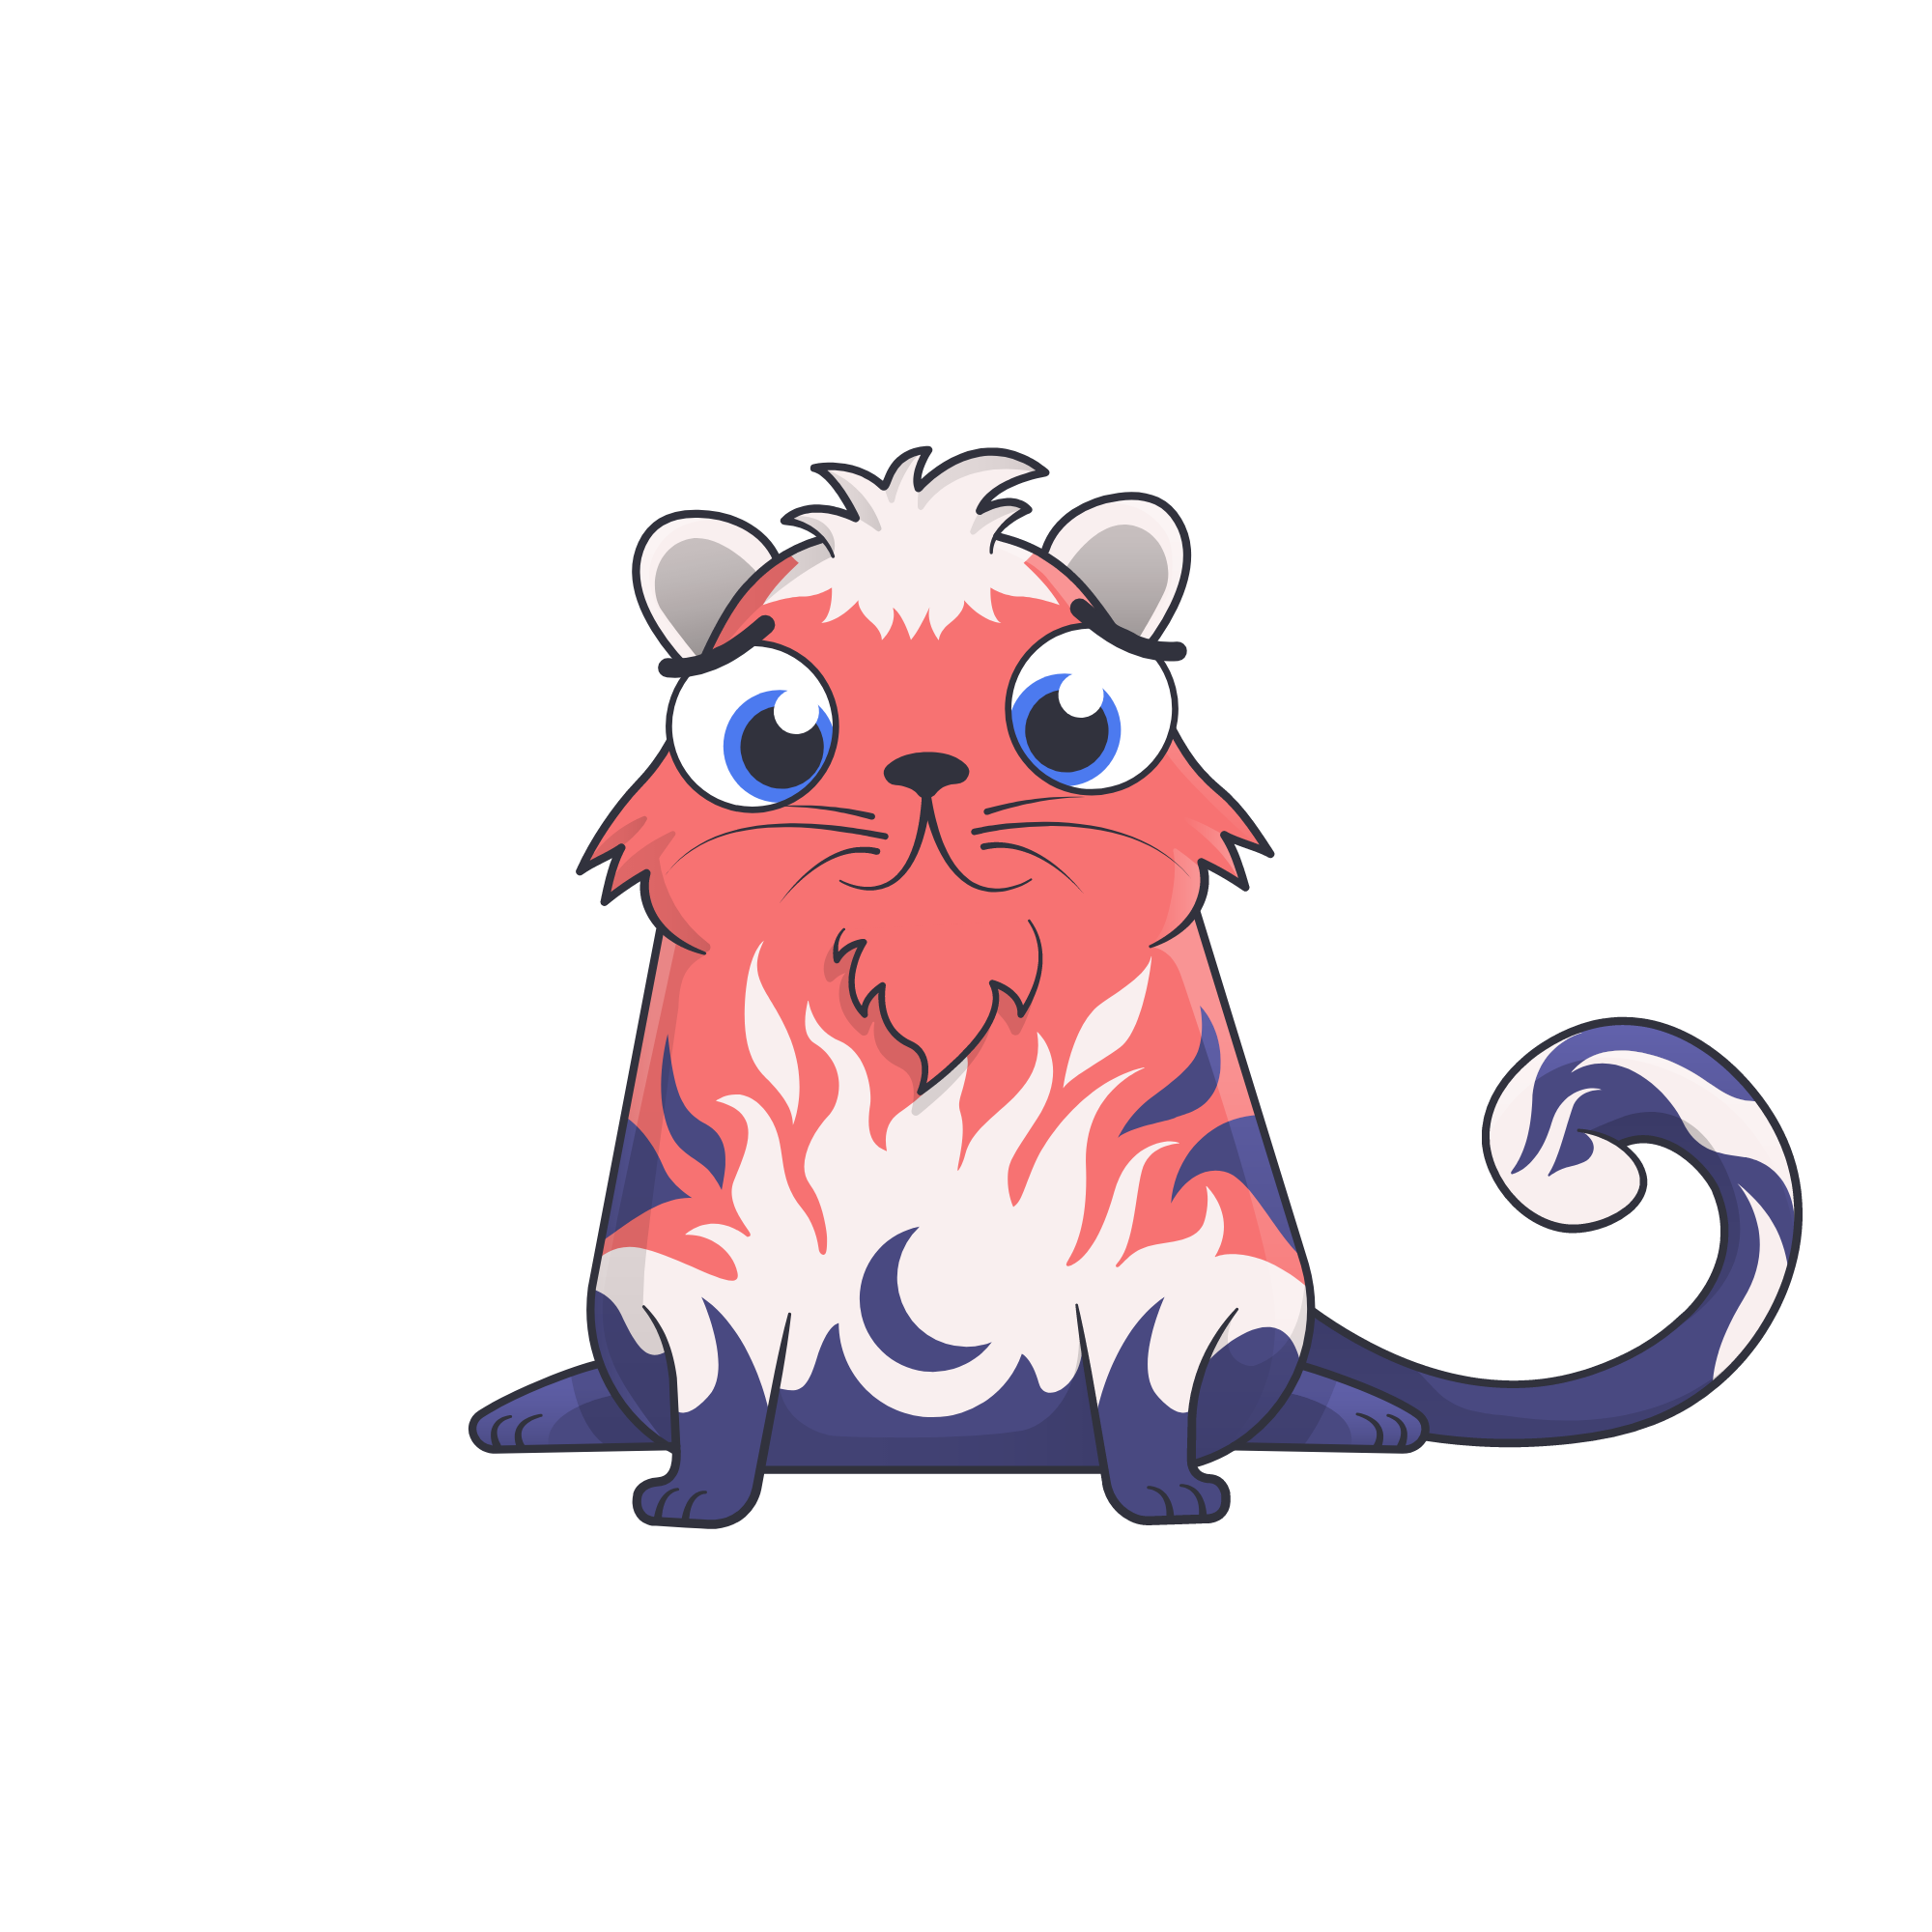 cryptokitty #1632075